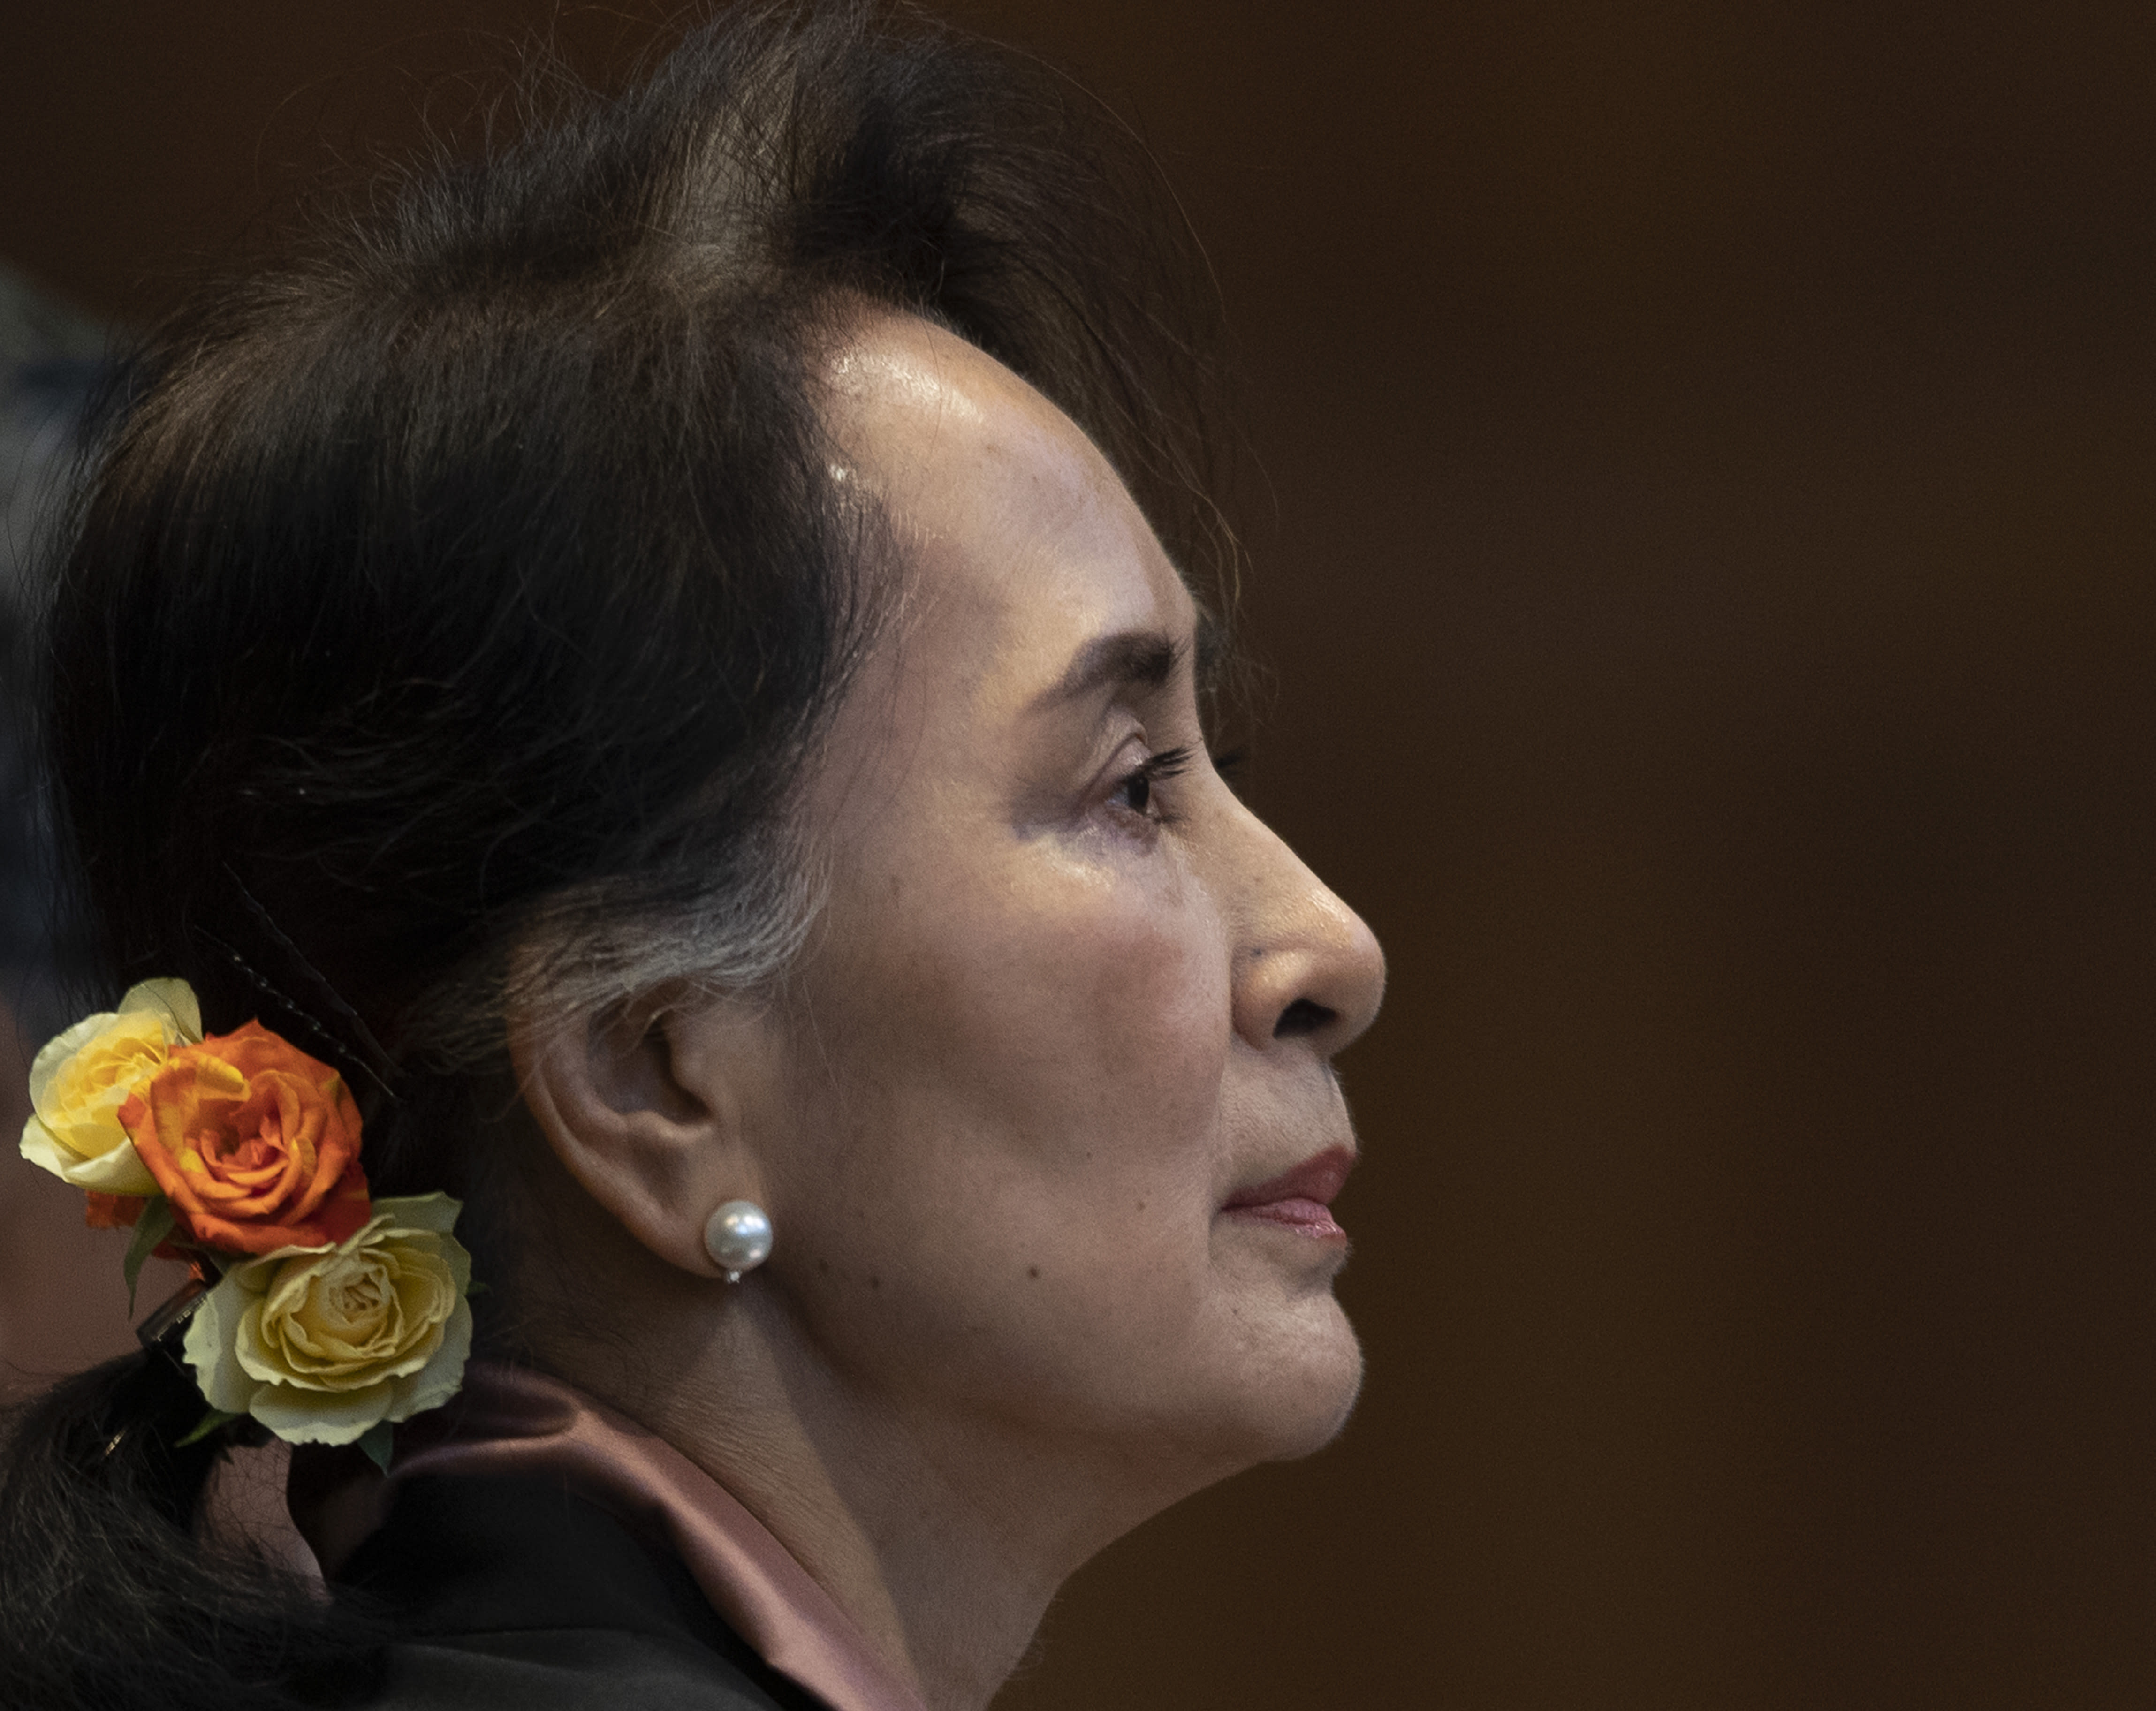 Suu Kyi in court to refute Myanmar genocide allegations